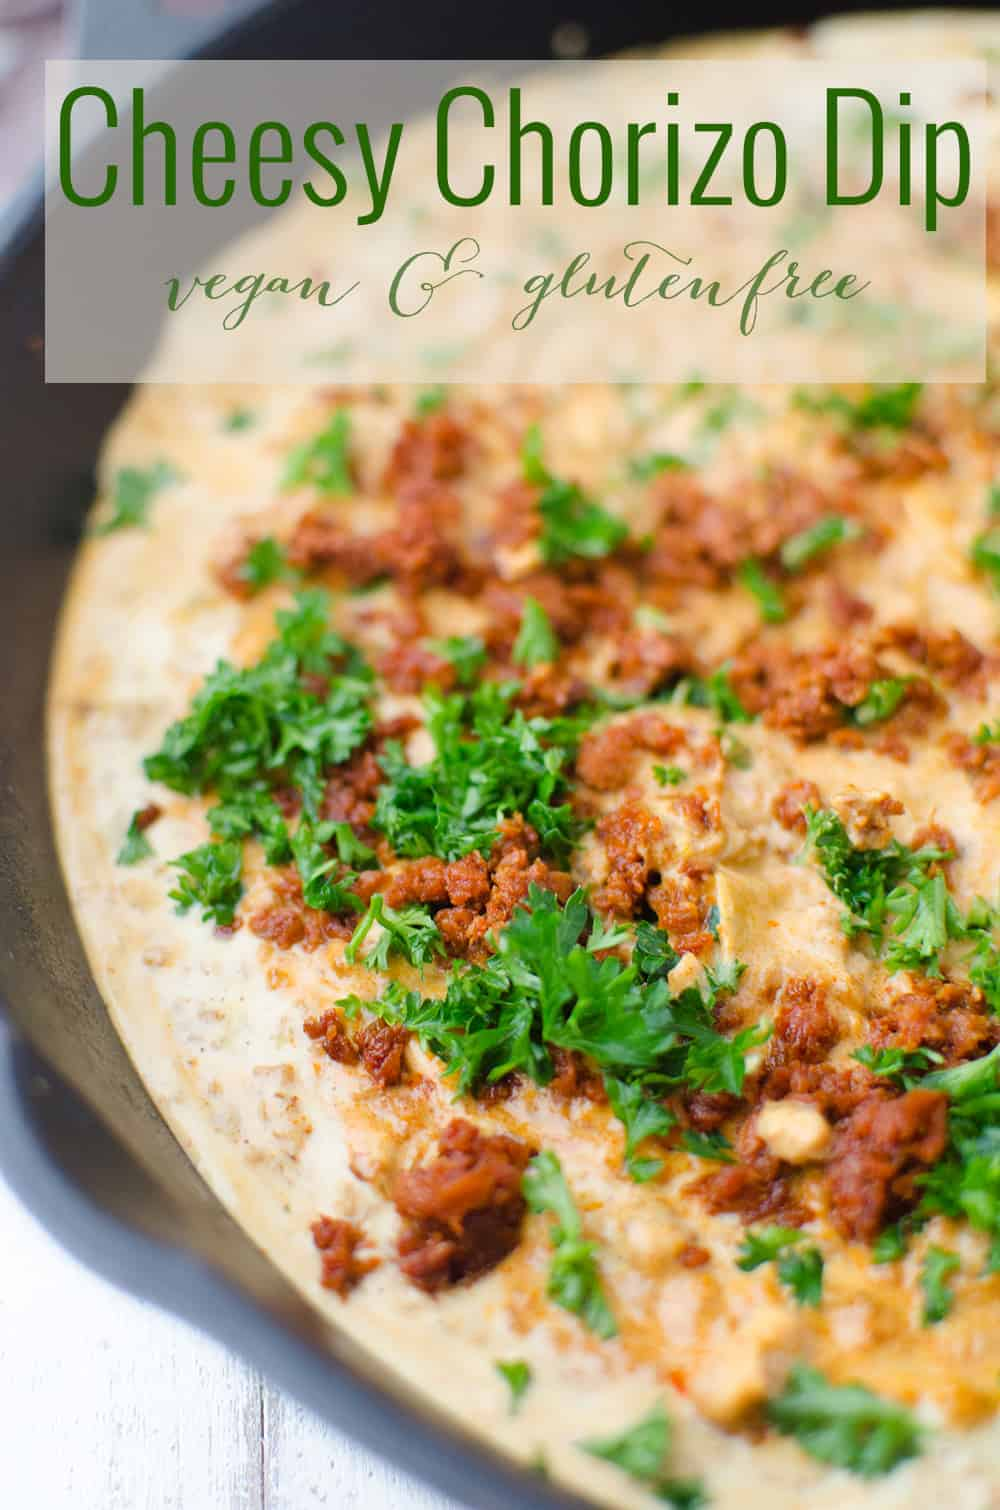 Cheesy Chorizo Dip! Vegan and Gluten Free. This is one dip you will wanna make again and again. Pepper Jack Cheese Dip with spicy meatless chorizo and fresh parsley. | www.delishknowledge.com